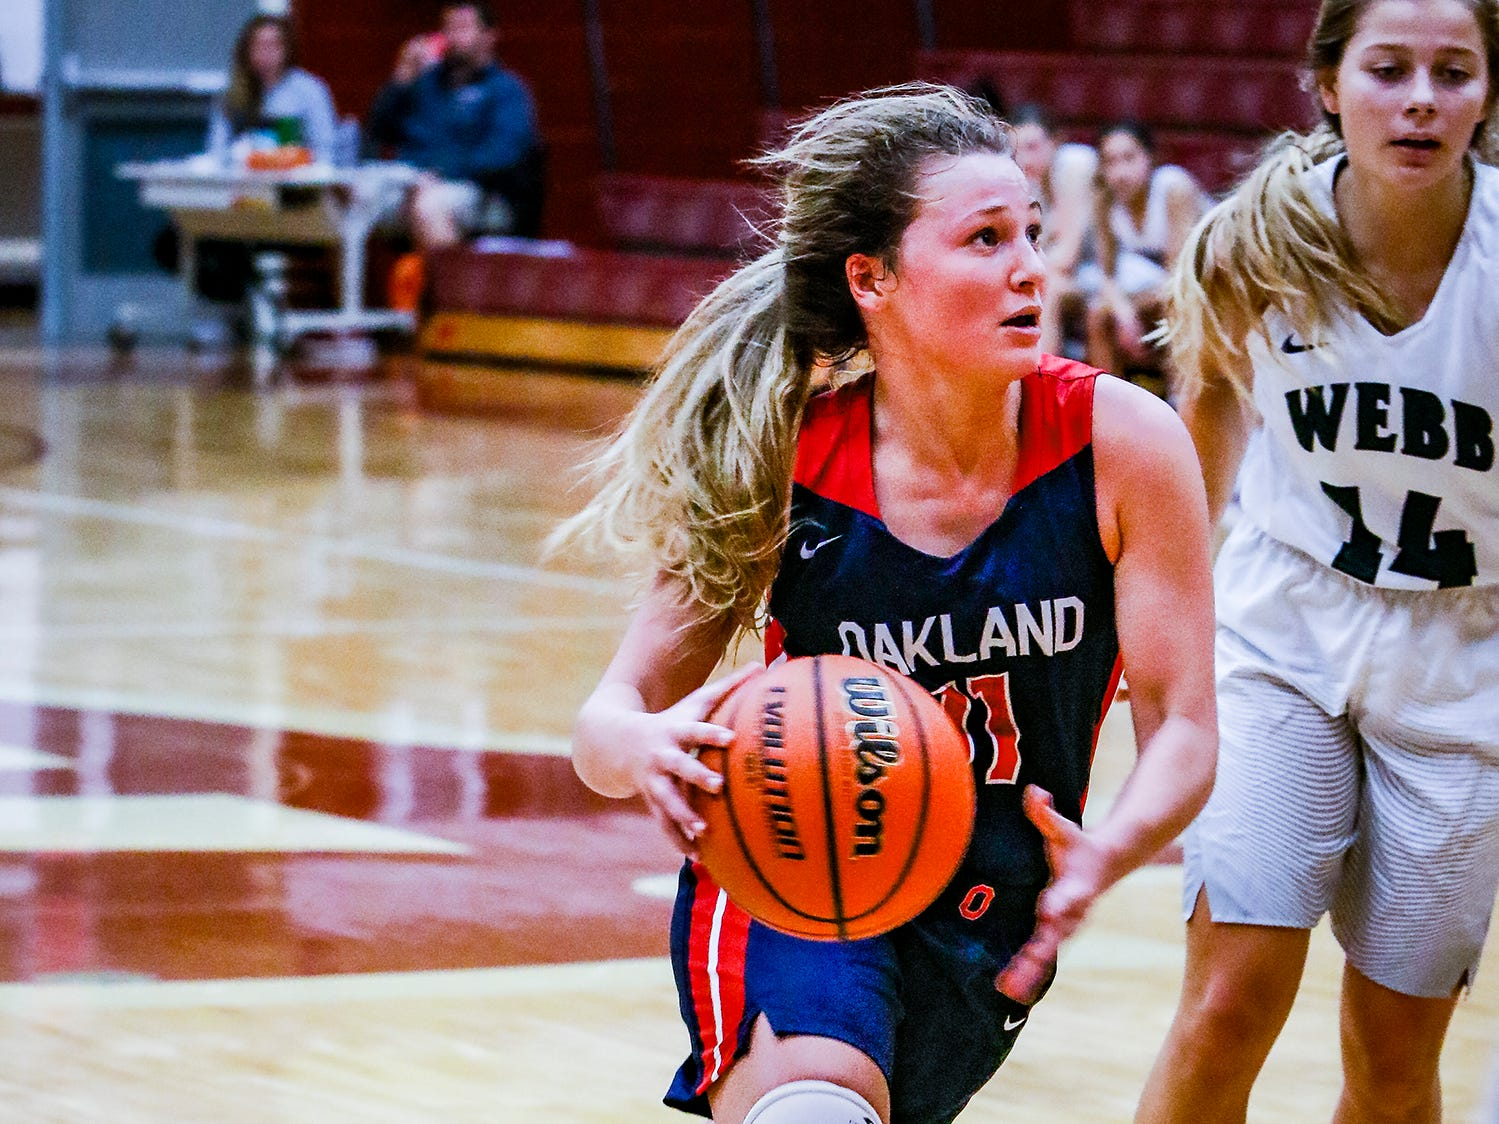 Oakland's Claira McGowan drives to the basket during Thursday's 48-47 win over Knox Webb.